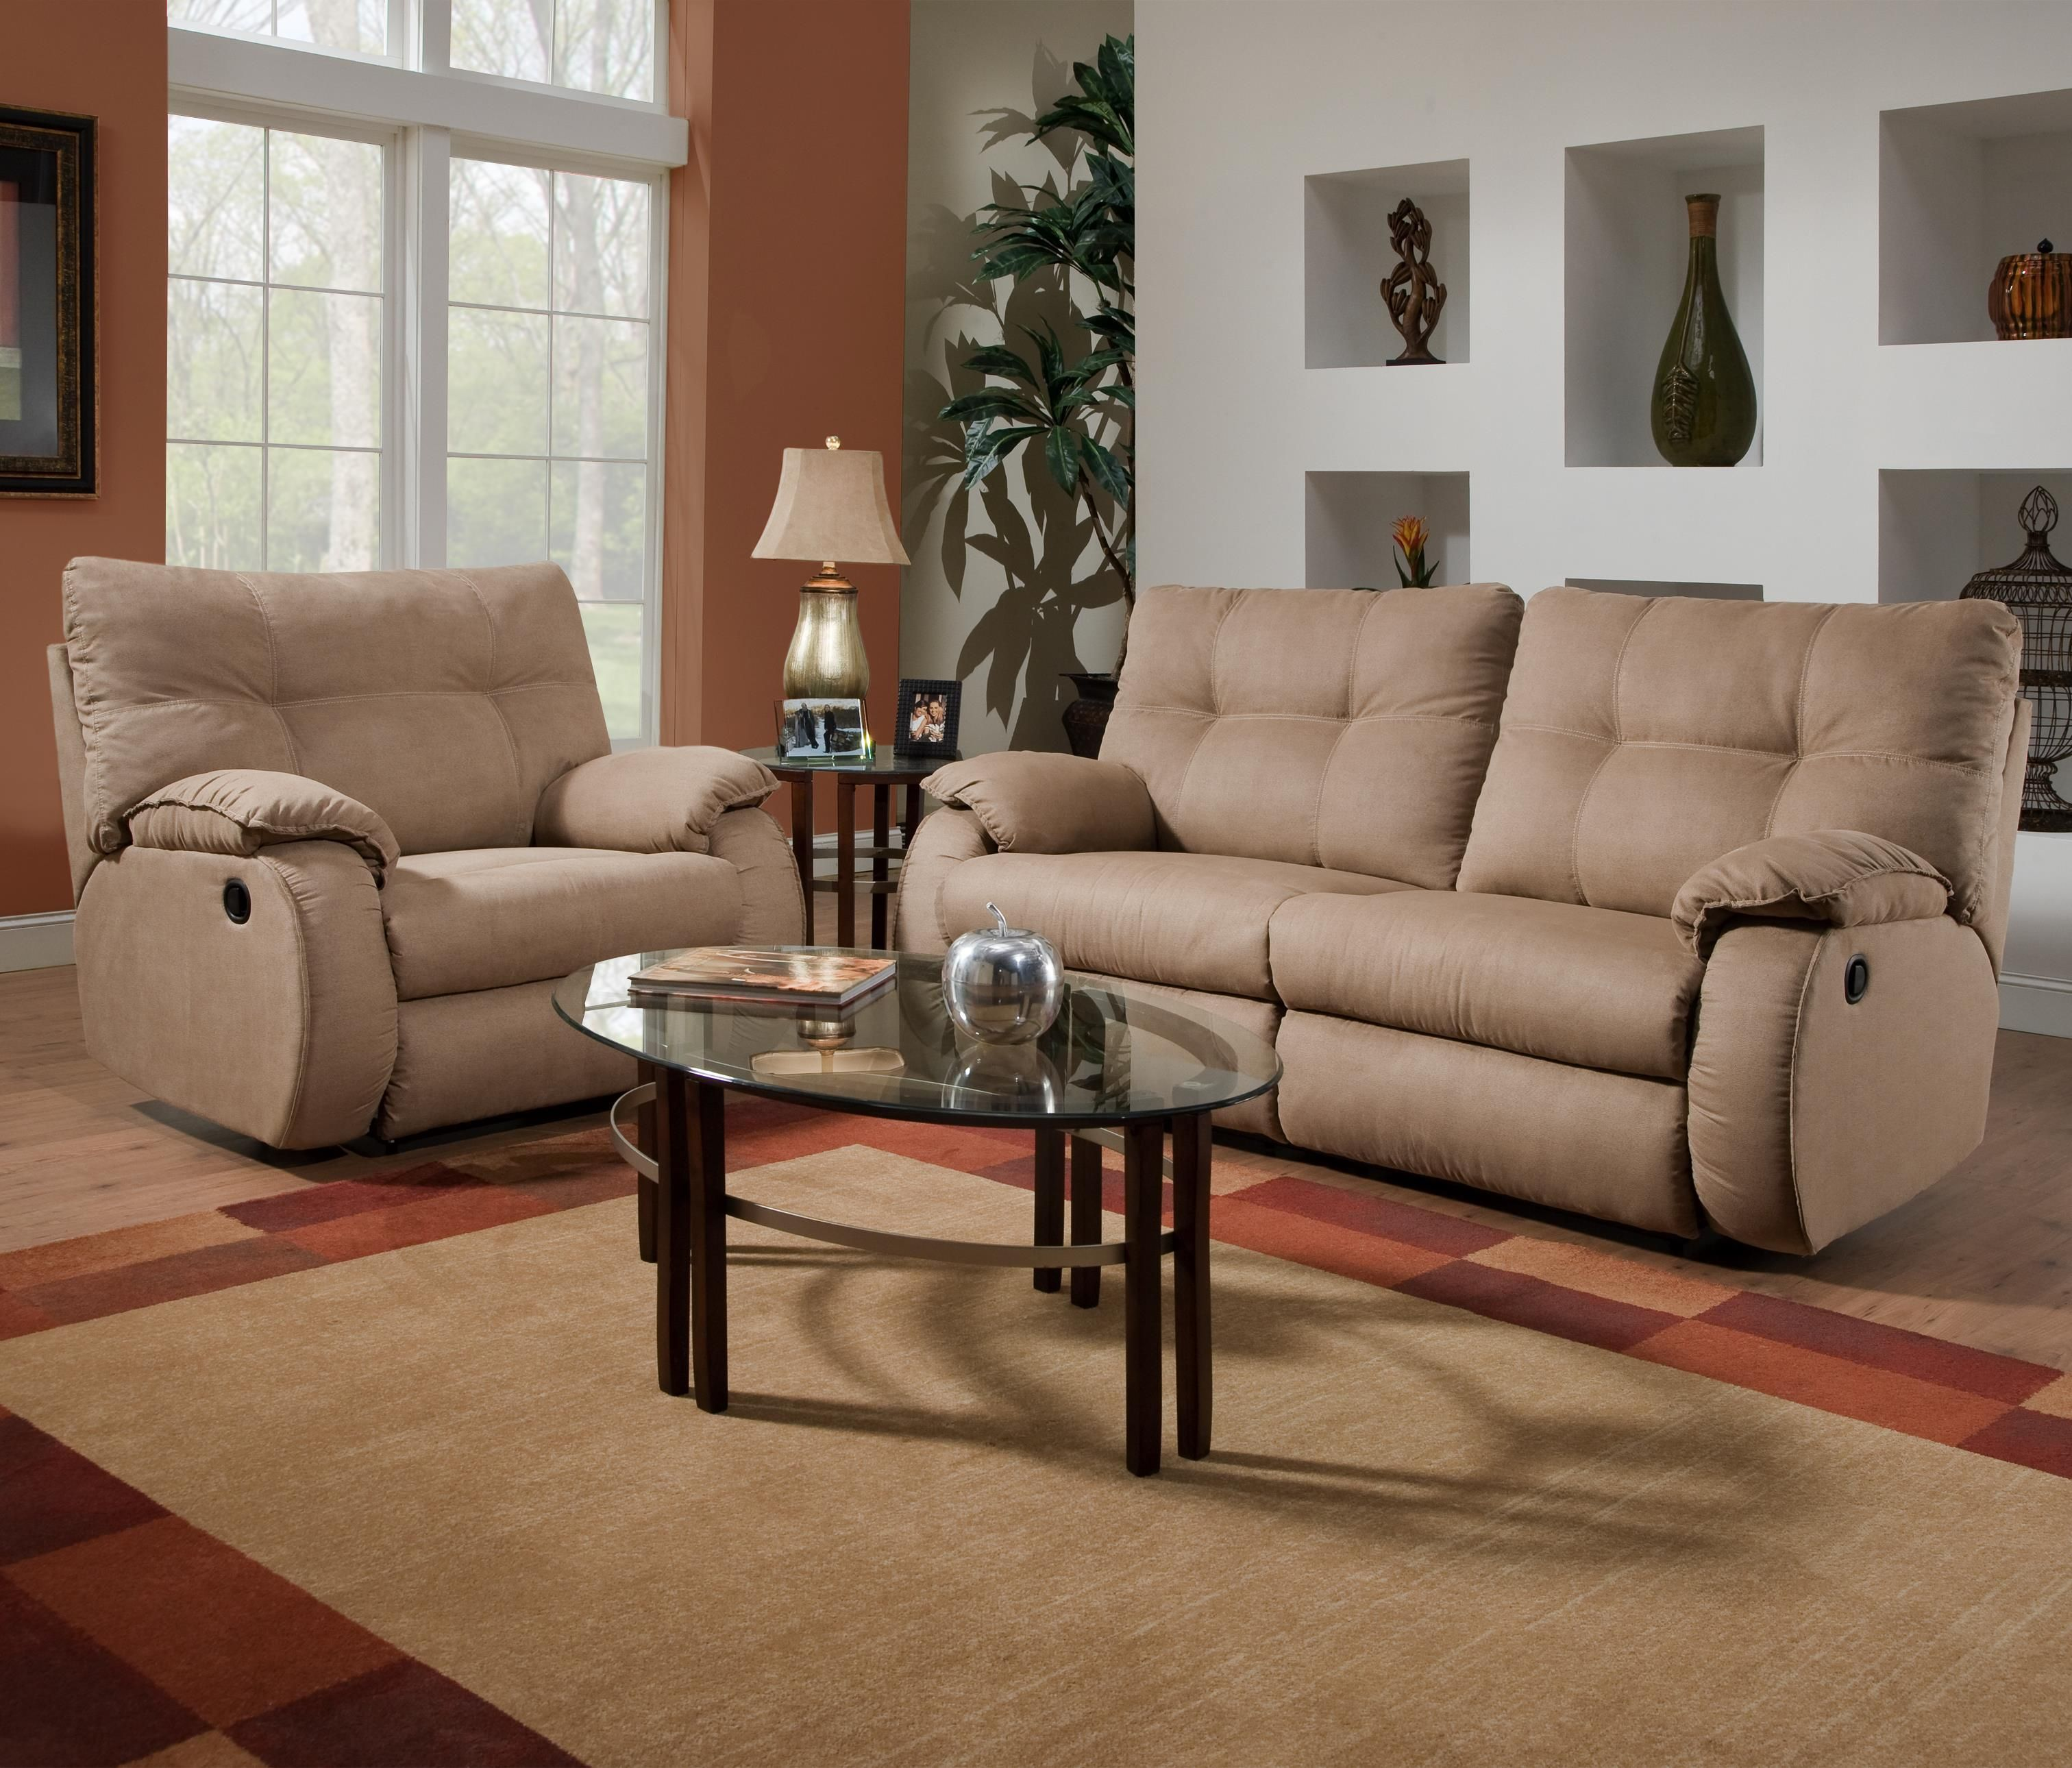 Dodger Power Reclining Sofa by Southern Motion Available at Turk